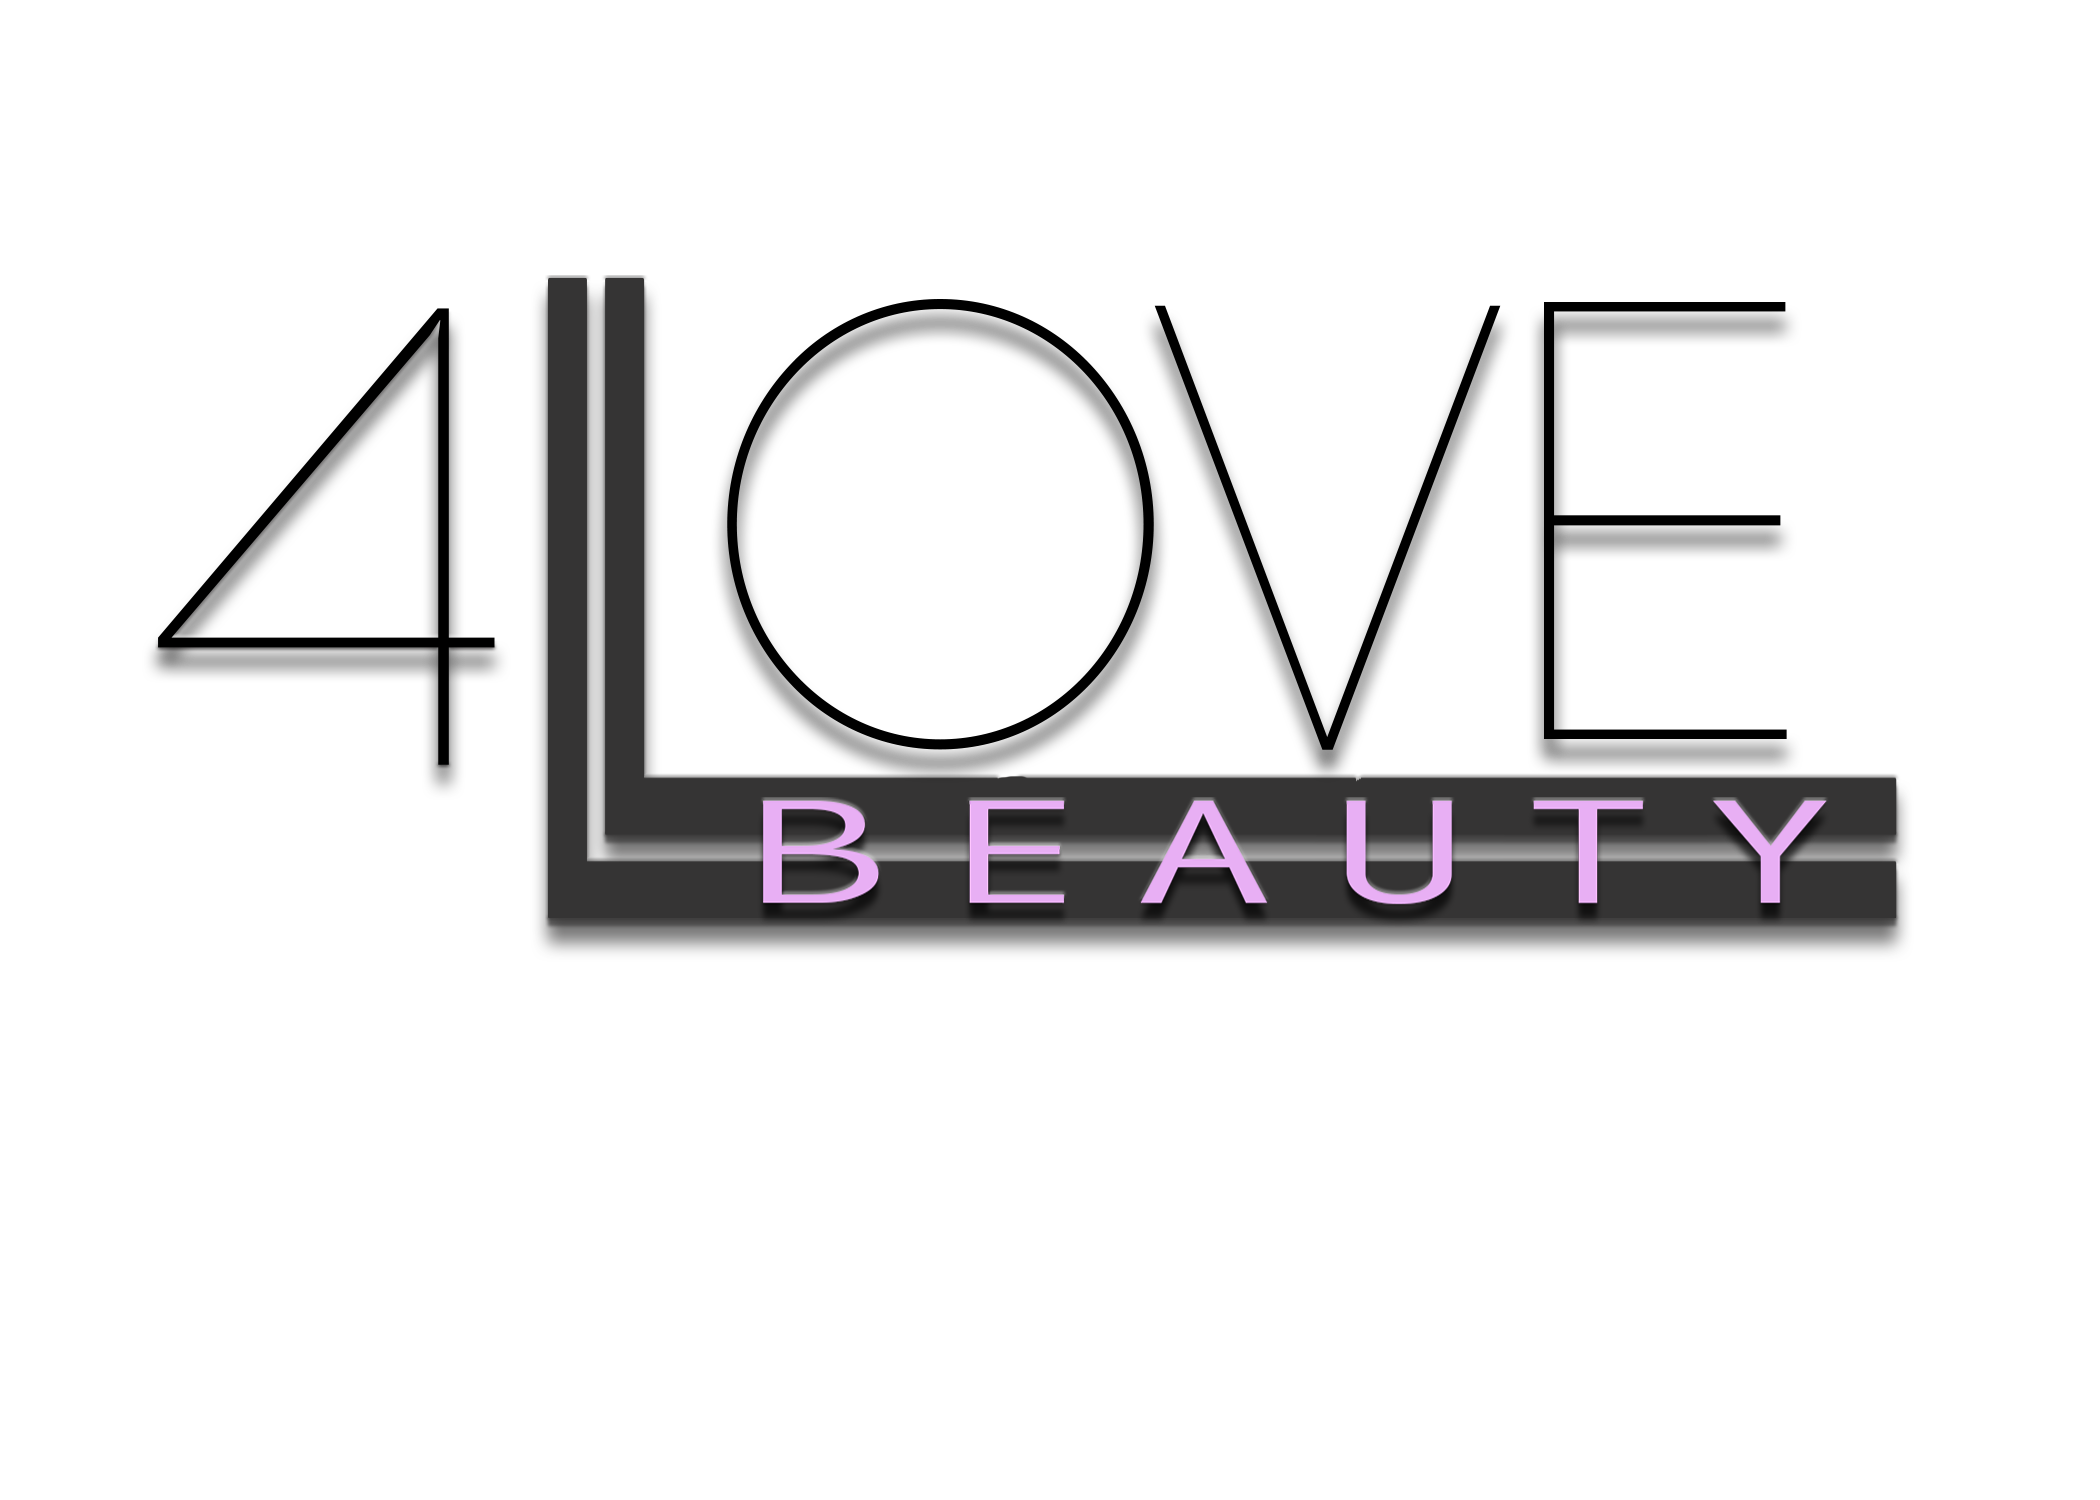 4Love Beauty, LLC